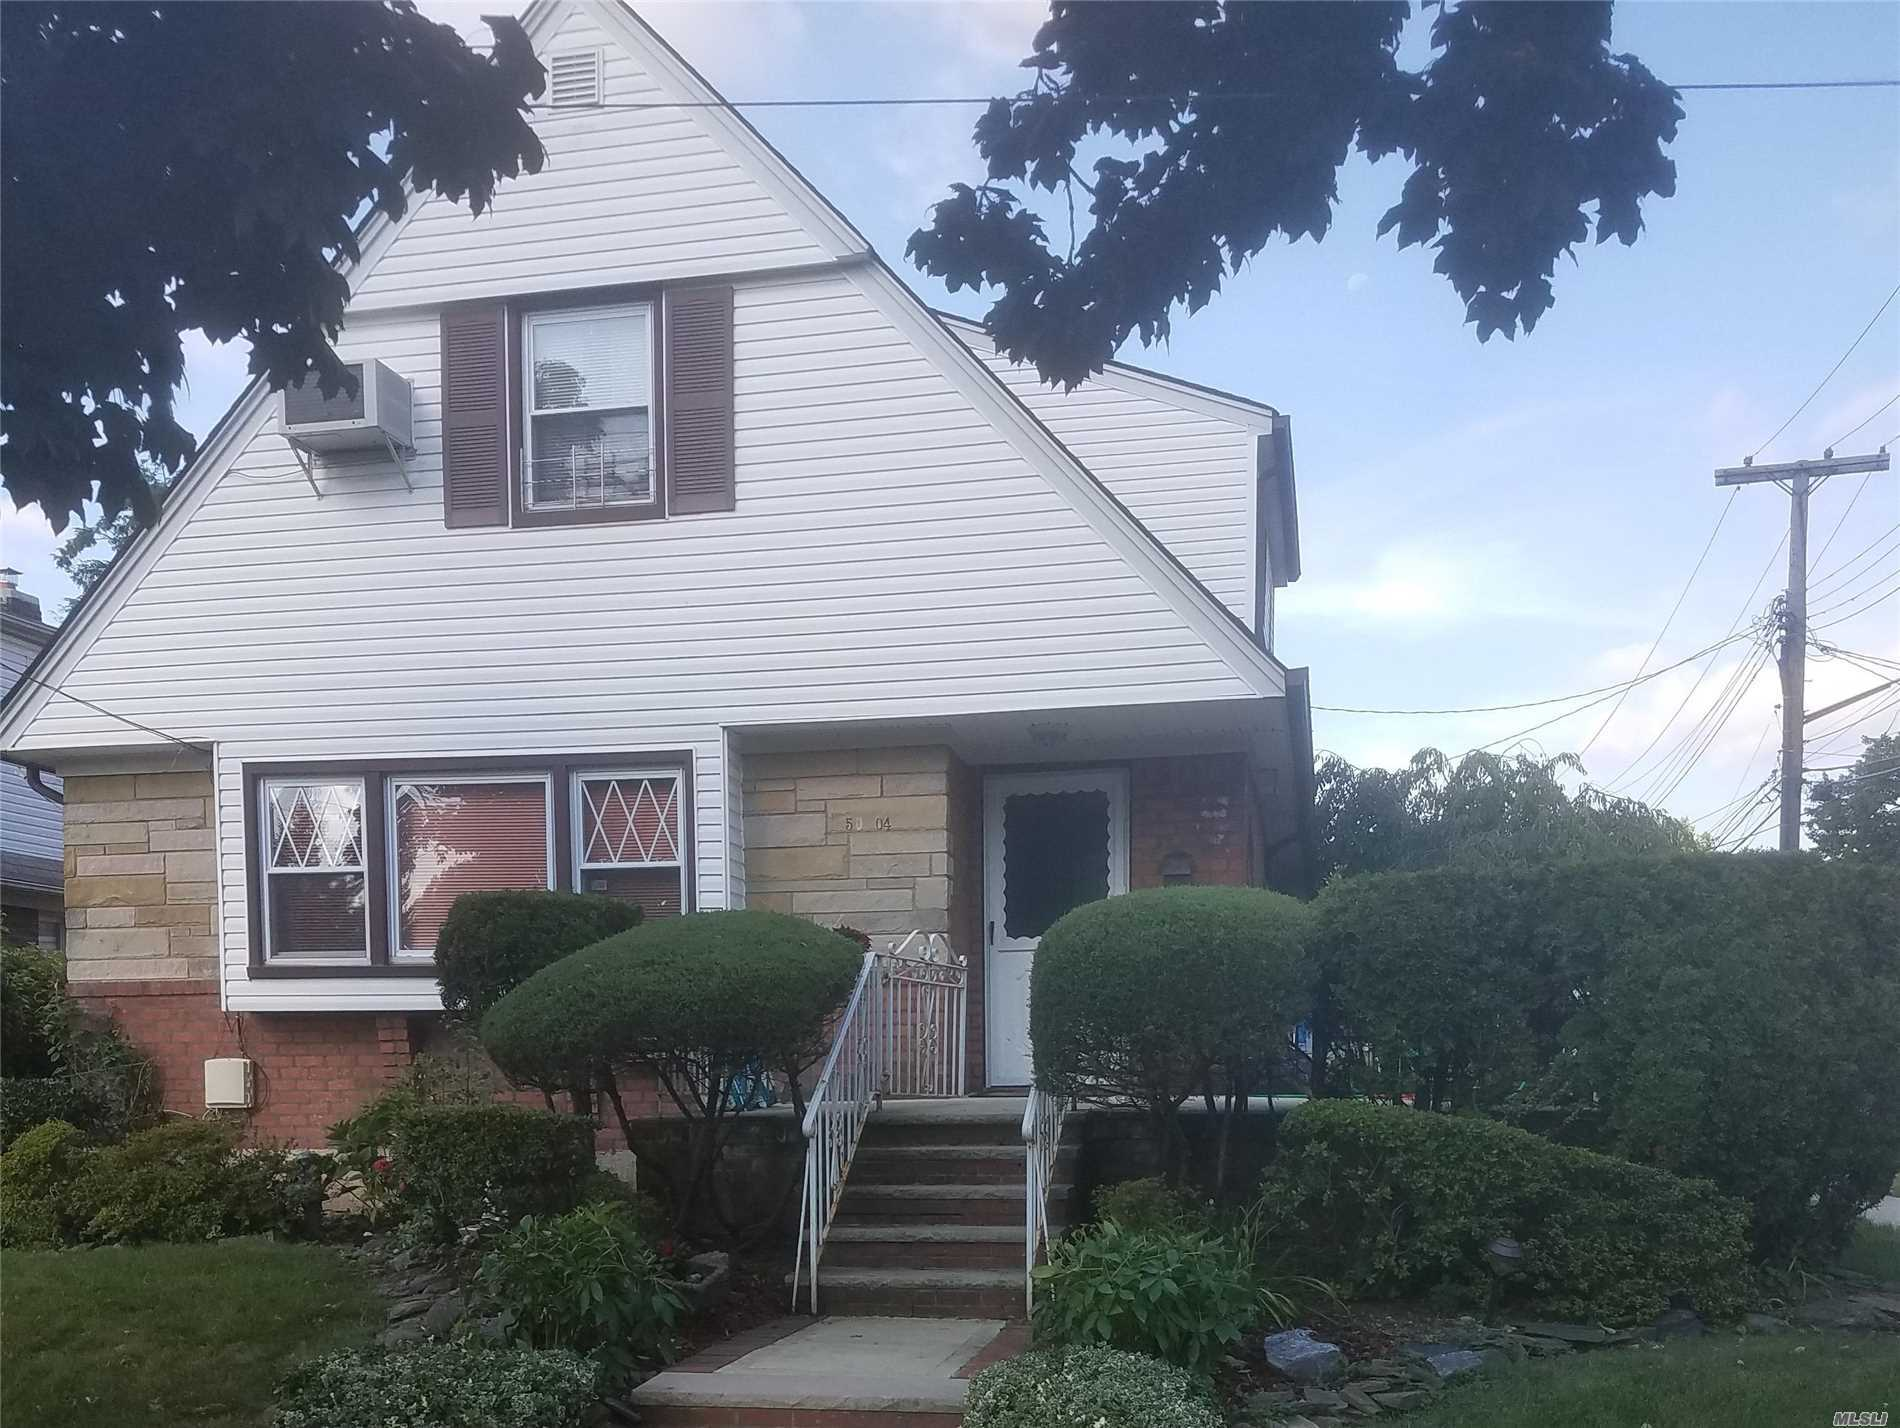 Spacious Cape On 50X100 Corner Lot In Desirable Bayside Hills. Well Maintained 4Br, 3Ba, Full Finished Basement W/Bar, Laundry Room And Separate Entrance. Second Floor Has Room For Mom W/Separate Living Area And Entrance. Large Deck Off 2nd Floor Bedroom. Lots Of Closet Space Throughout Including Walk-In-Closet. Sd#26. Convenient To Shopping, Schools, Public Transportation, Dining And Houses Of Worship.